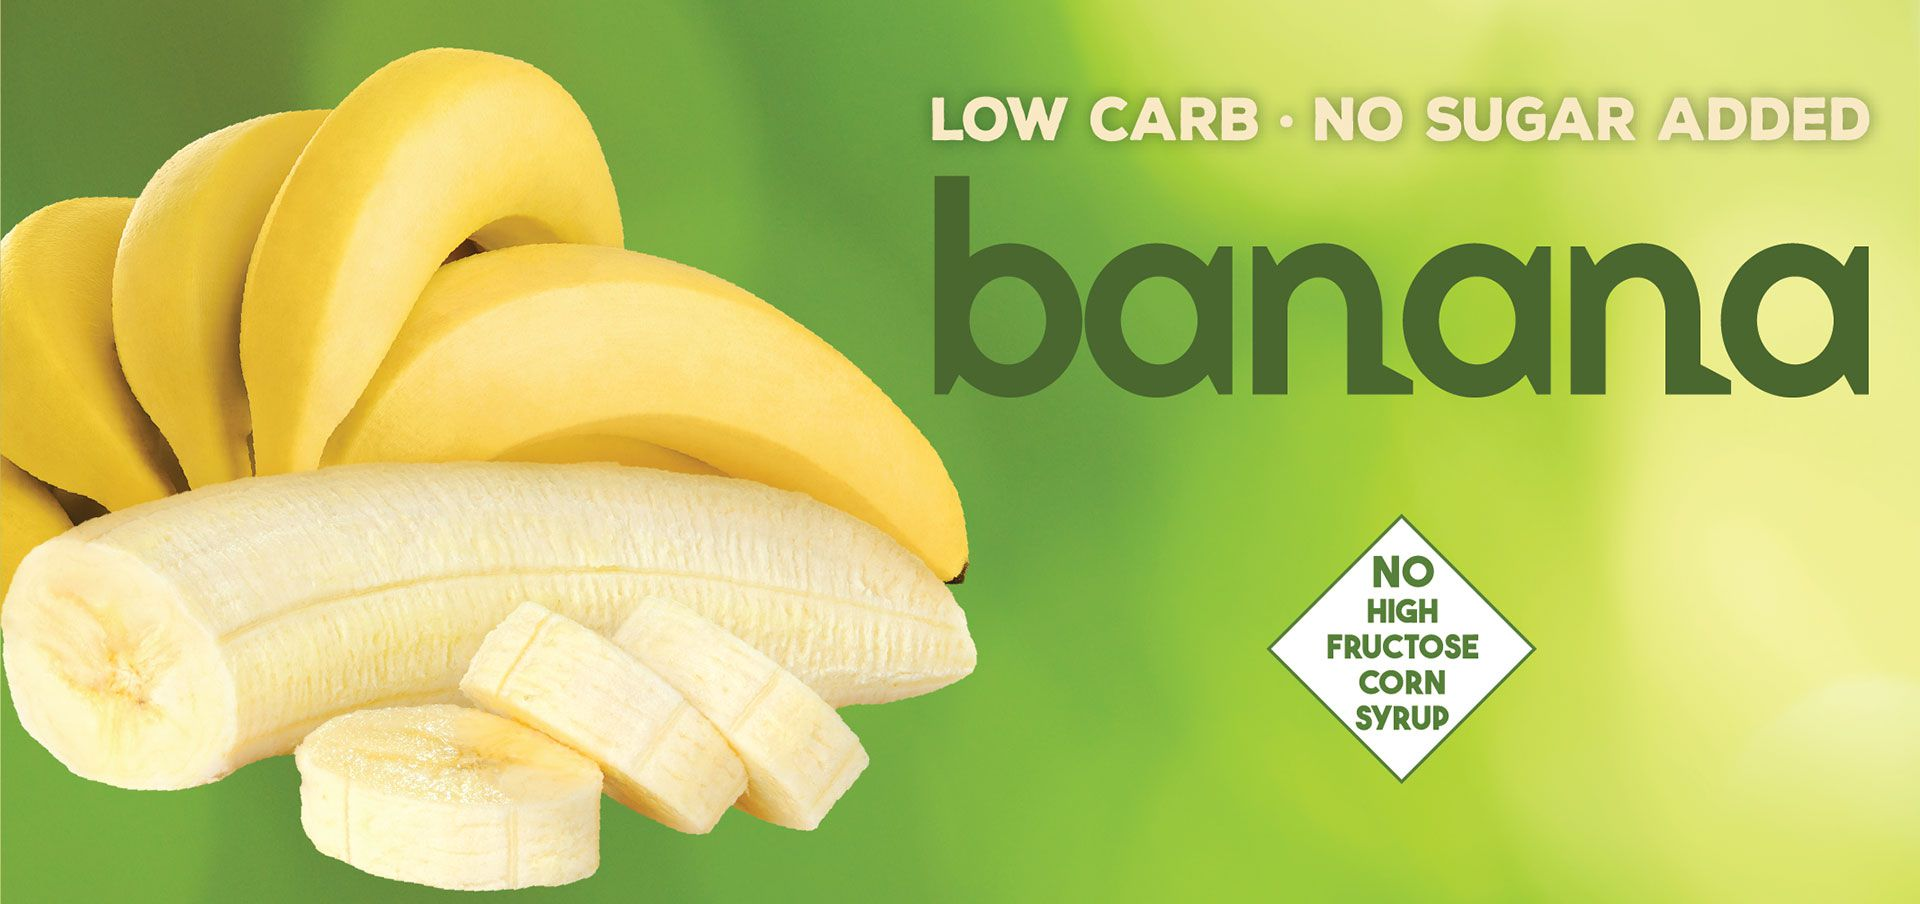 banana label image